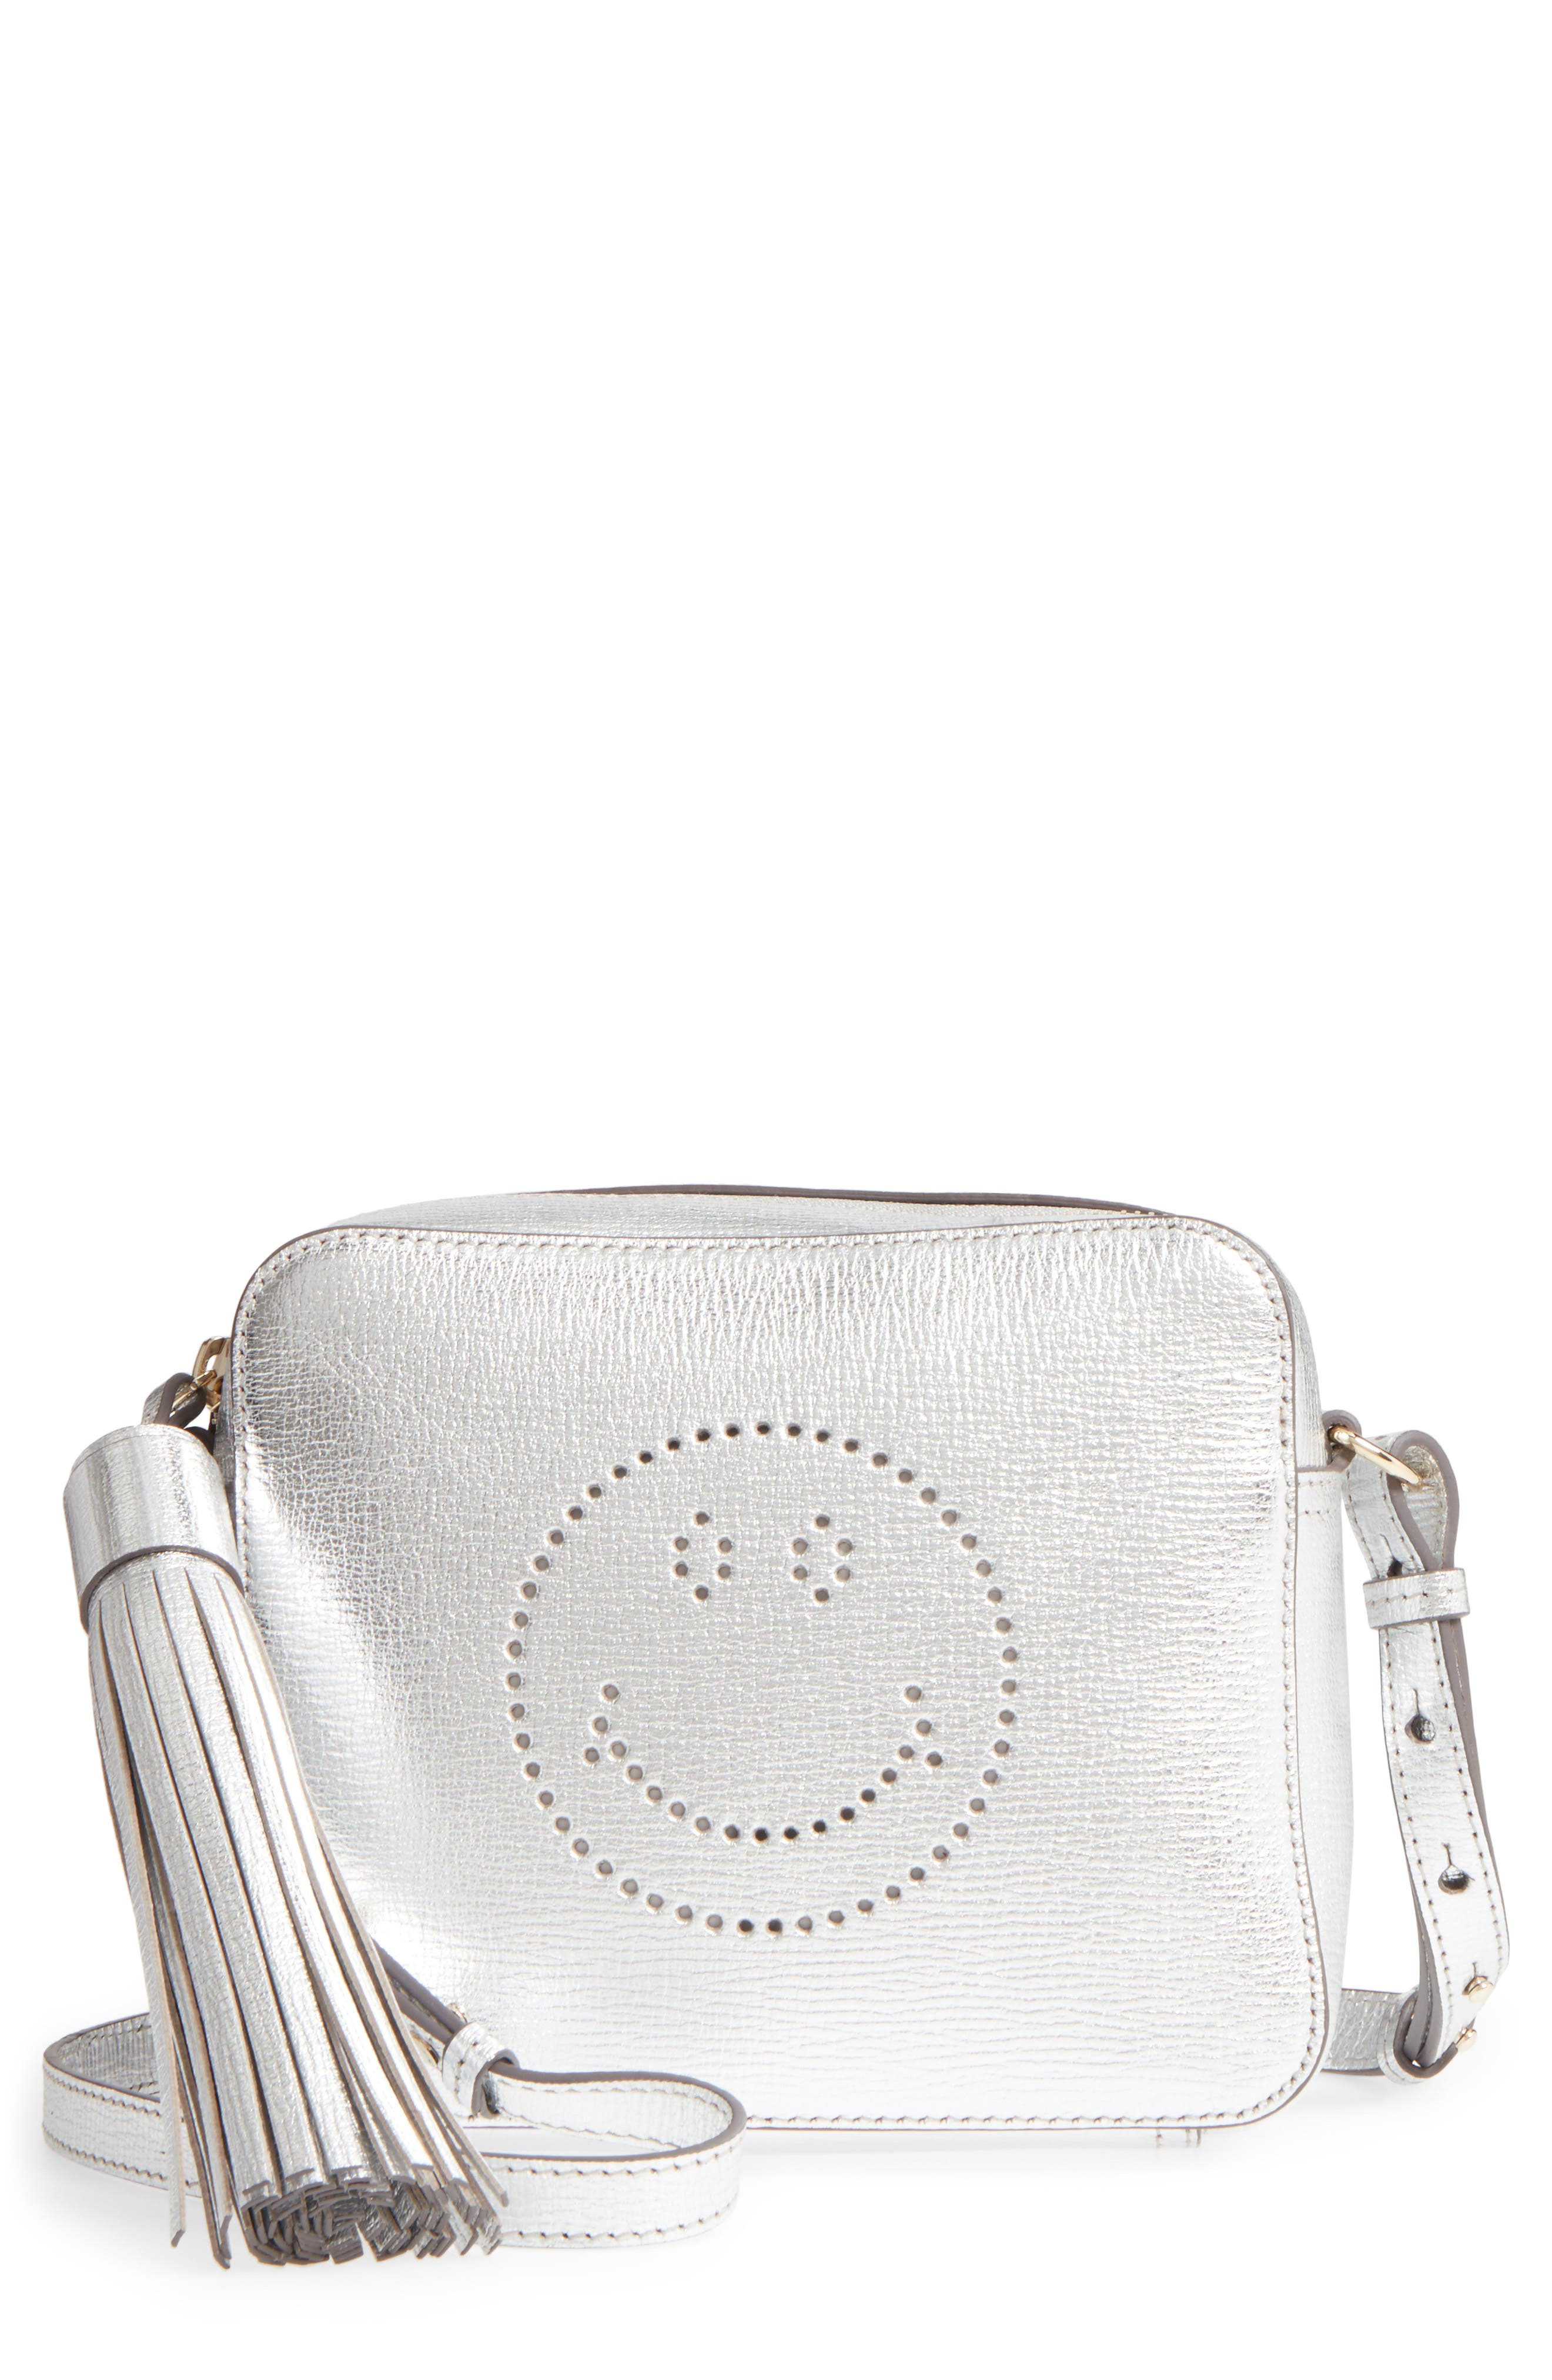 Smiley Metallic Leather Crossbody Bag,                         Main,                         color, Silver